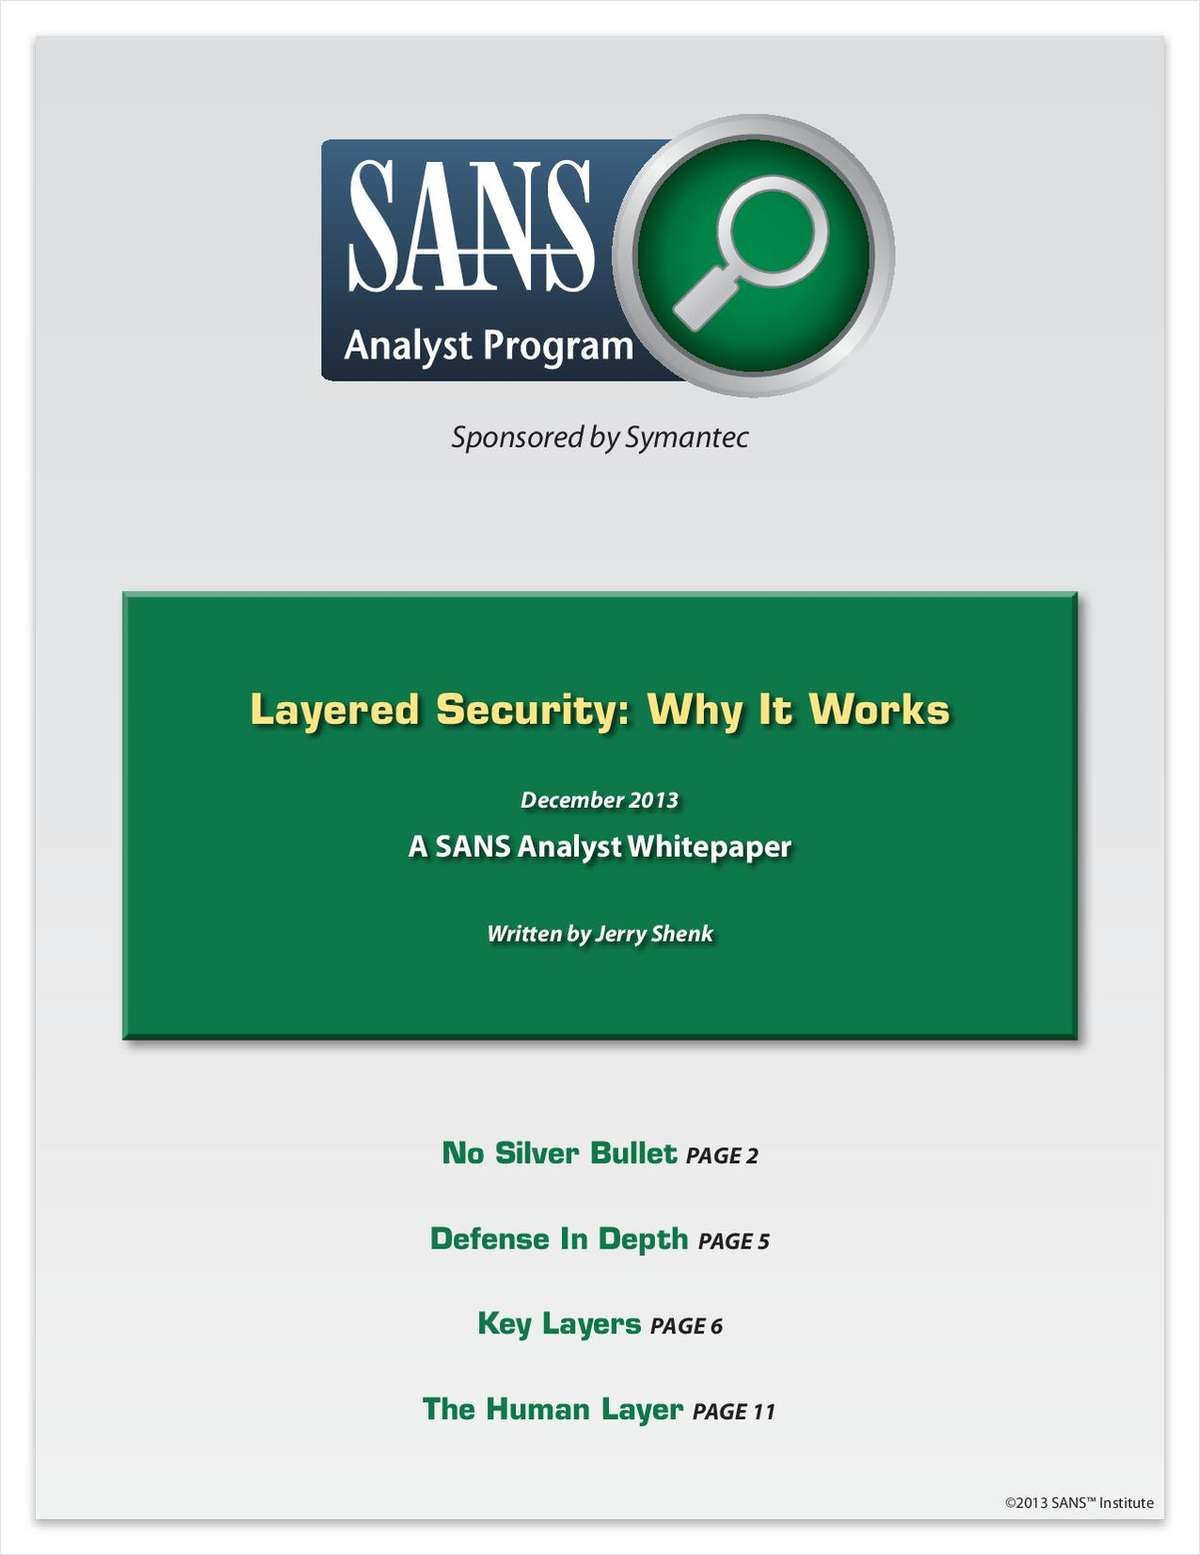 Layered Security: Why It Works